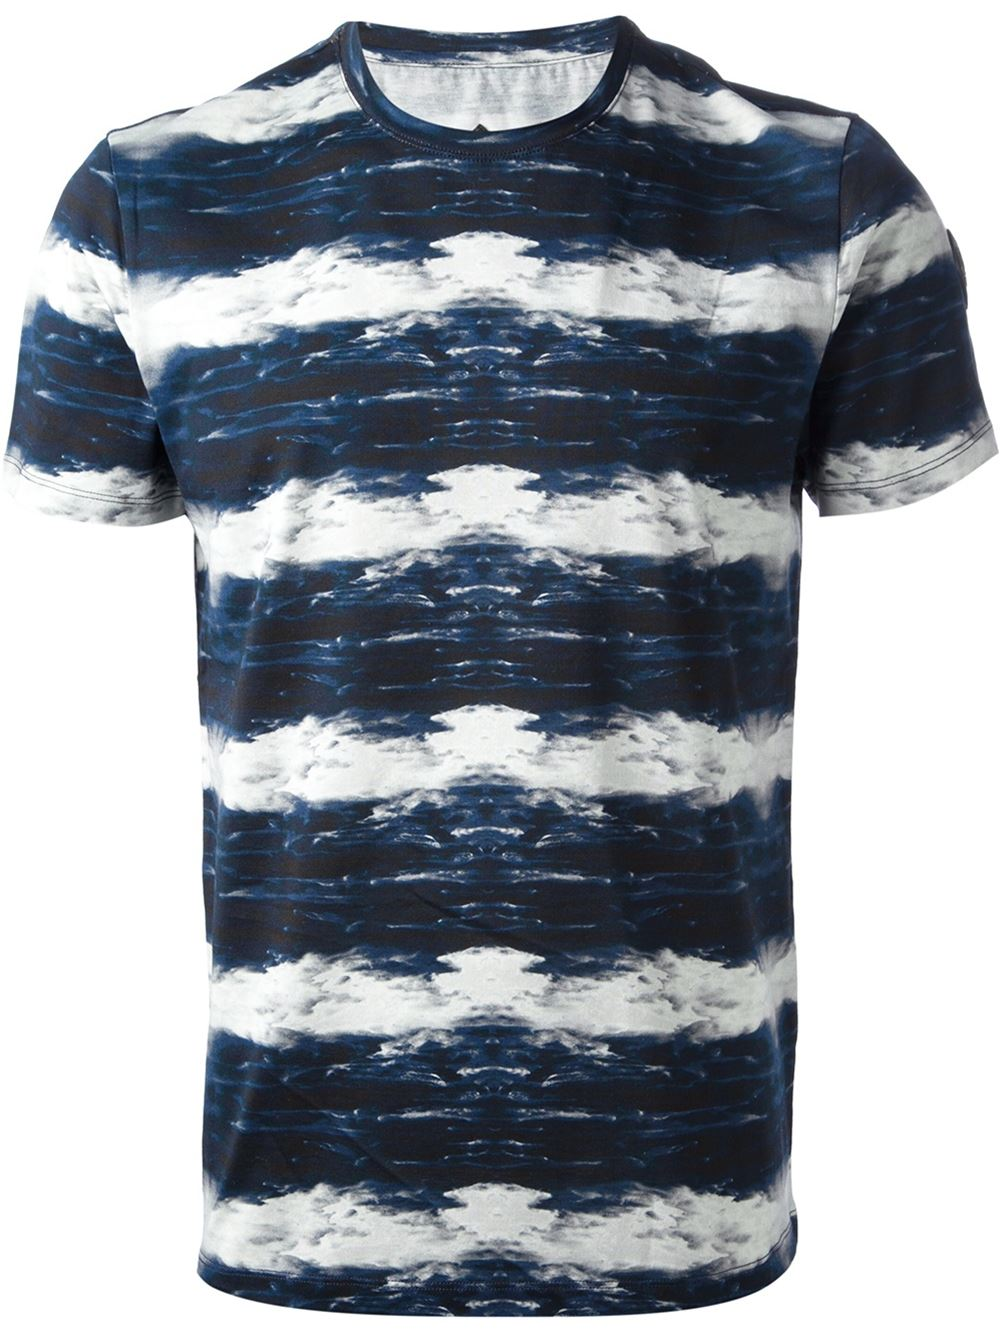 wholesale Blue and white cotton wave print lightweight T-shirt